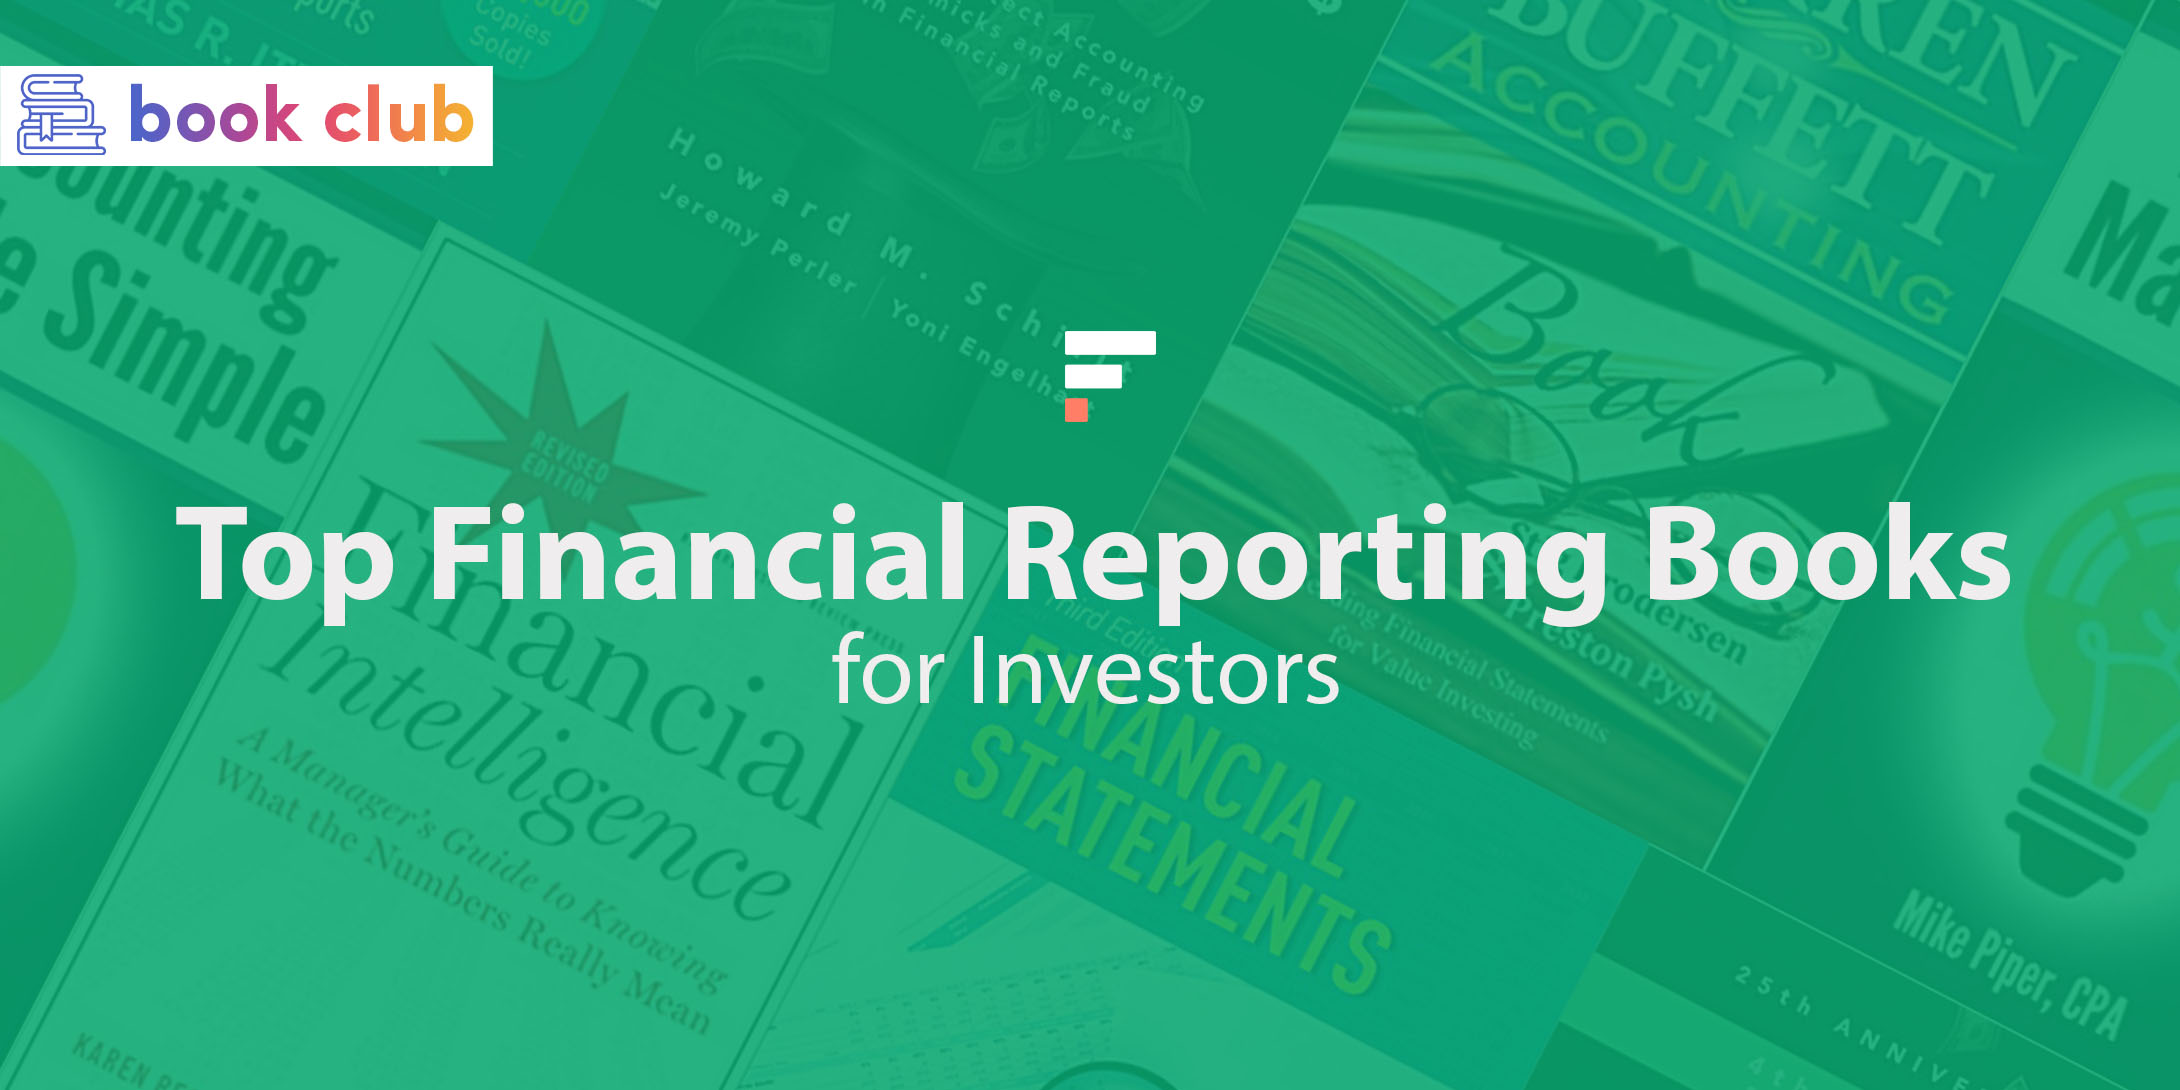 Financial reporting books for investors